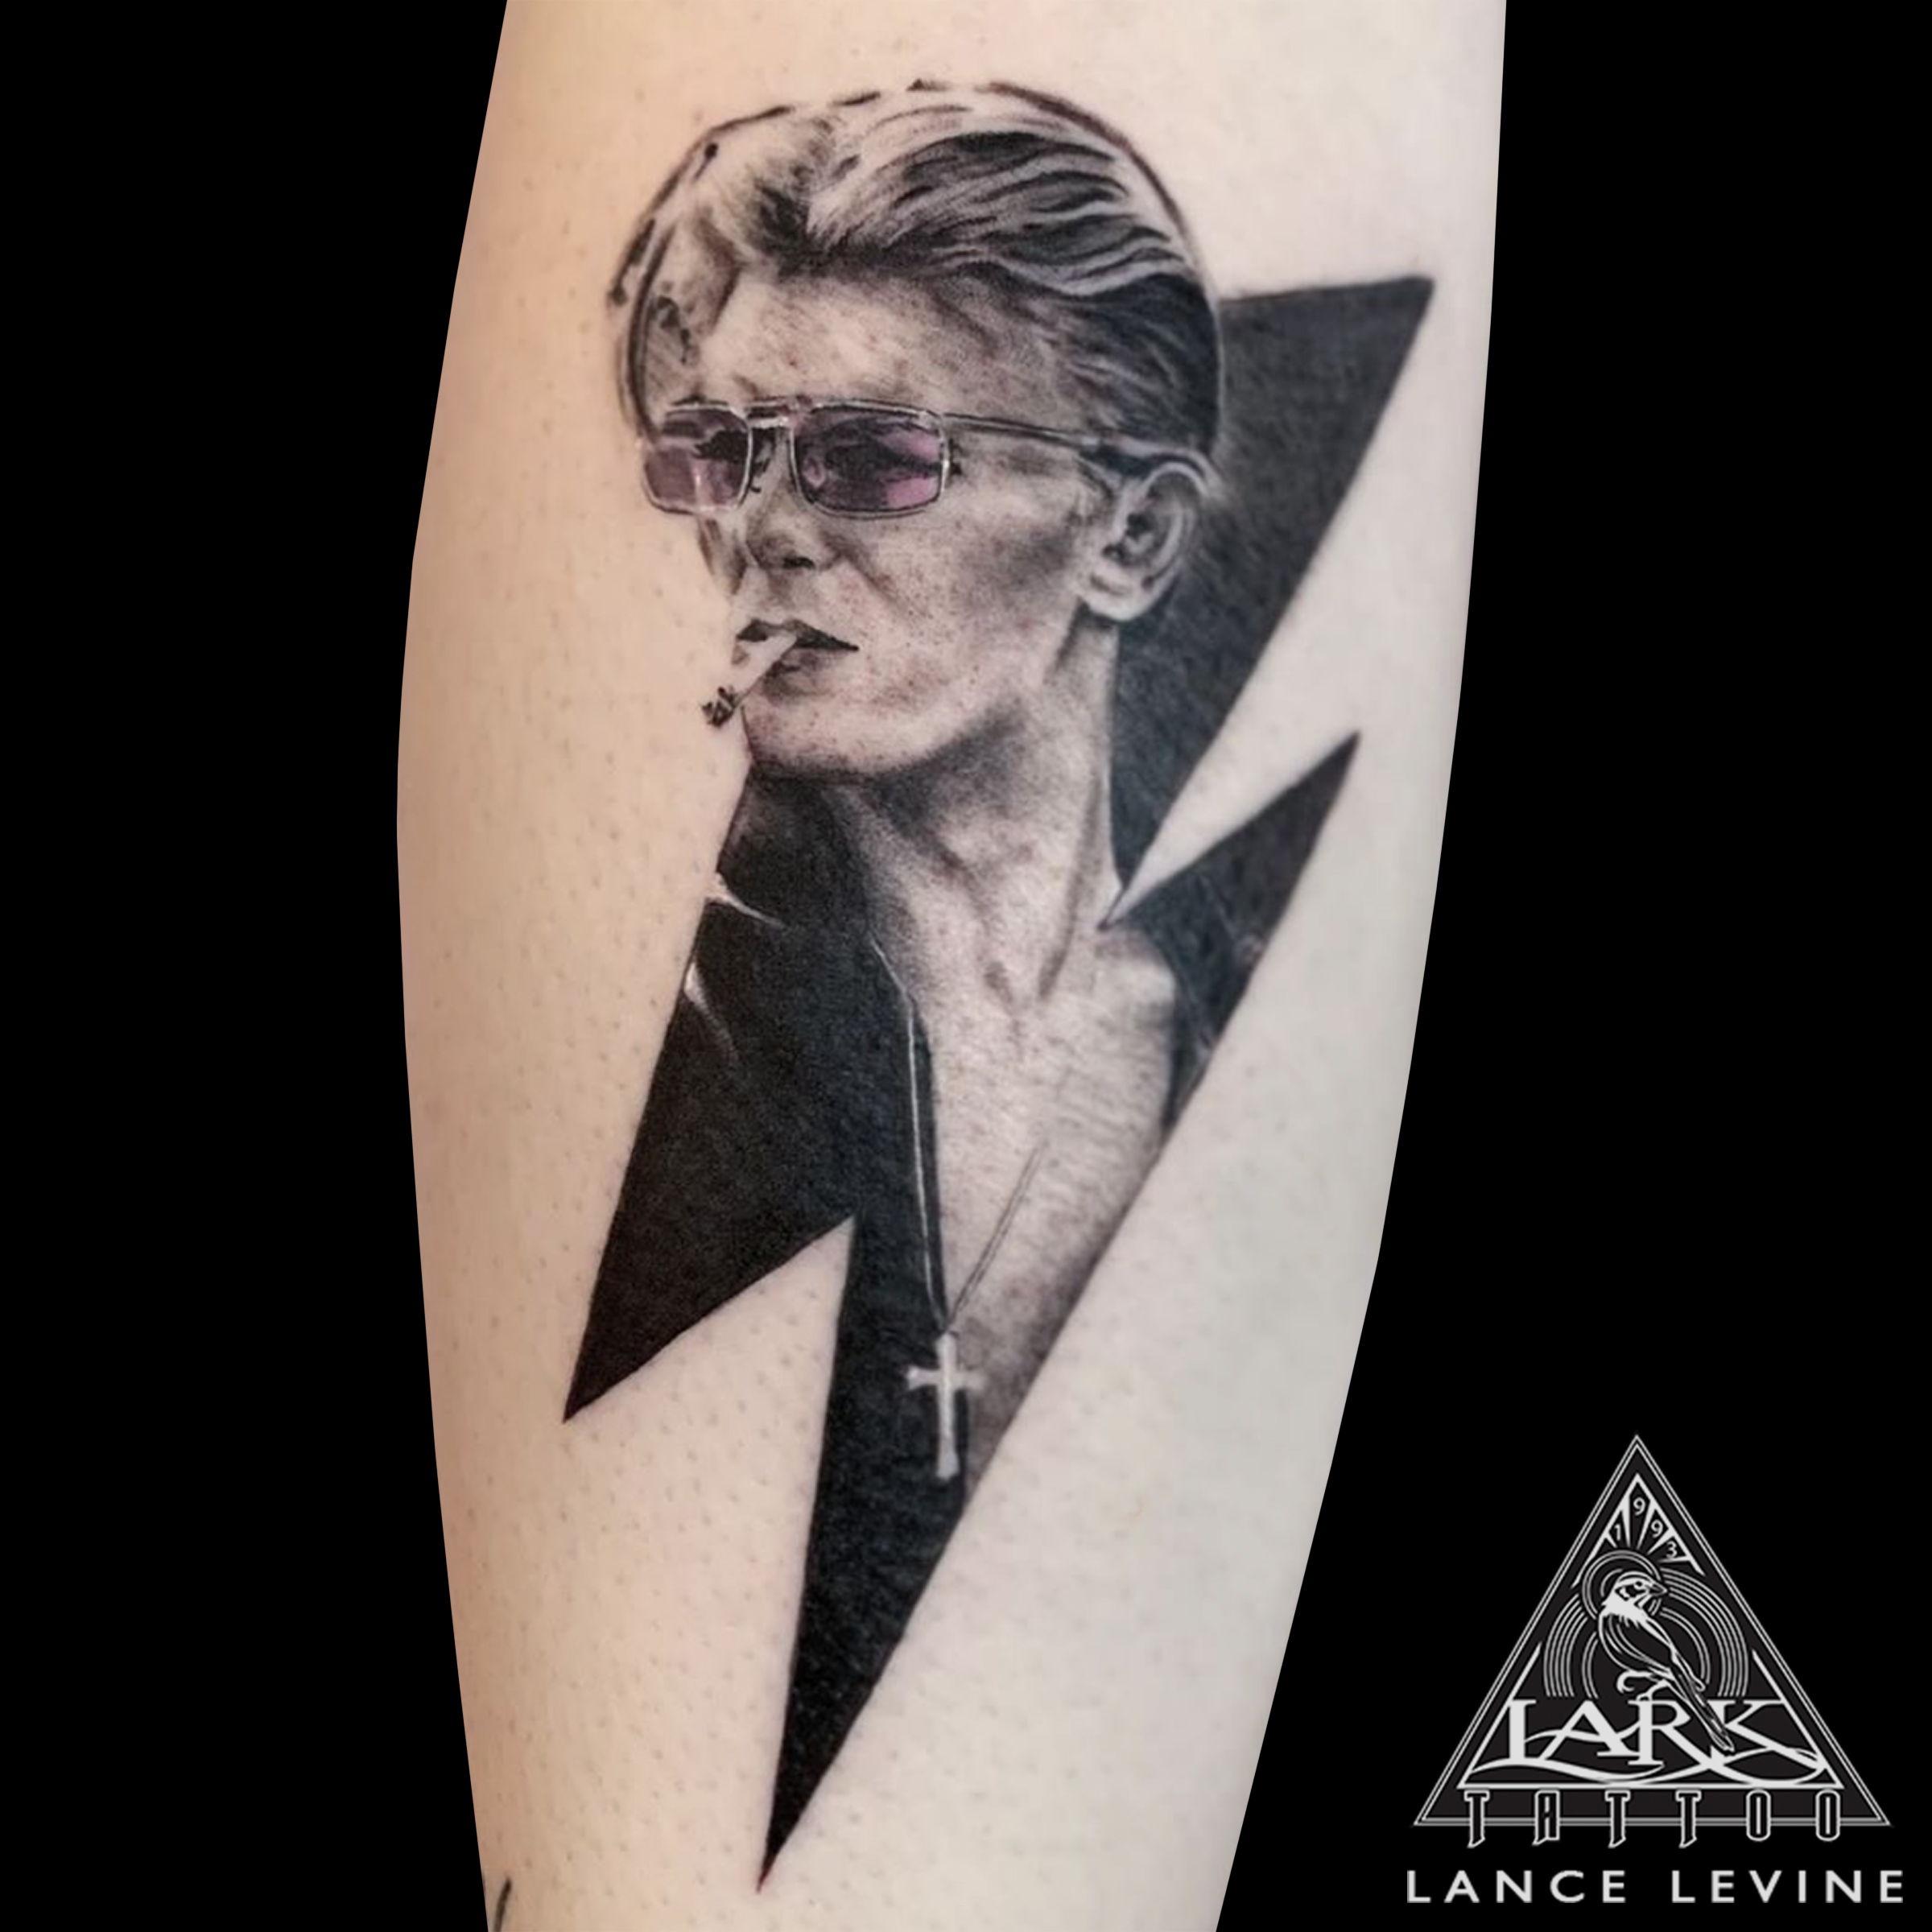 Tattoo, LanceLevine, LarkTattoo, BlackAndGray, BlackAndGrayTattoo, BlackAndGrey, BlackAndGreyTattoo, DavidBowie, DavidBowieTattoo, Bowie, BowieTattoo, ZiggyStardust, ZiggyStardustTattoo, DavidBowiePortrait, DavidBowiePortraitTattoo, Portrait, PortraitTattoo, 70sMusic, 70sMusicTattoo, Starman, DavidBowieFan, DavidBowieFanTattoo, DavidBowieTribute, DavidBowieTributeTattoo, DavidBowieArt, DavidBowieFanPage, DavidBowieFans, TheThinWhiteDuke, TheThinWhiteDukeTattoo, ThinWhiteDuke, ThinWhiteDukeTattoo, DavidBowieIsGod, ILoveDavidBowie, RIPDavidBowie, SpaceOddity, SpaceOddityTattoo, ForeverBowie, DavidBowieSmoking, DavidBowieSmokingTattoo, TattooArtist, Tattoist, Tattooer, LongIslandTattooArtist, LongIslandTattooer, LongIslandTattoo, TattooOfTheDay, Tat, Tats, Tatts, Tatted, Inked, Ink, TattooInk, AmazingInk, AmazingTattoo, BodyArt, LarkTattooWestbury, Westbury, LongIsland, NY, NewYork, USA, Art, Tattedup, InkedUp, LarkTattoos